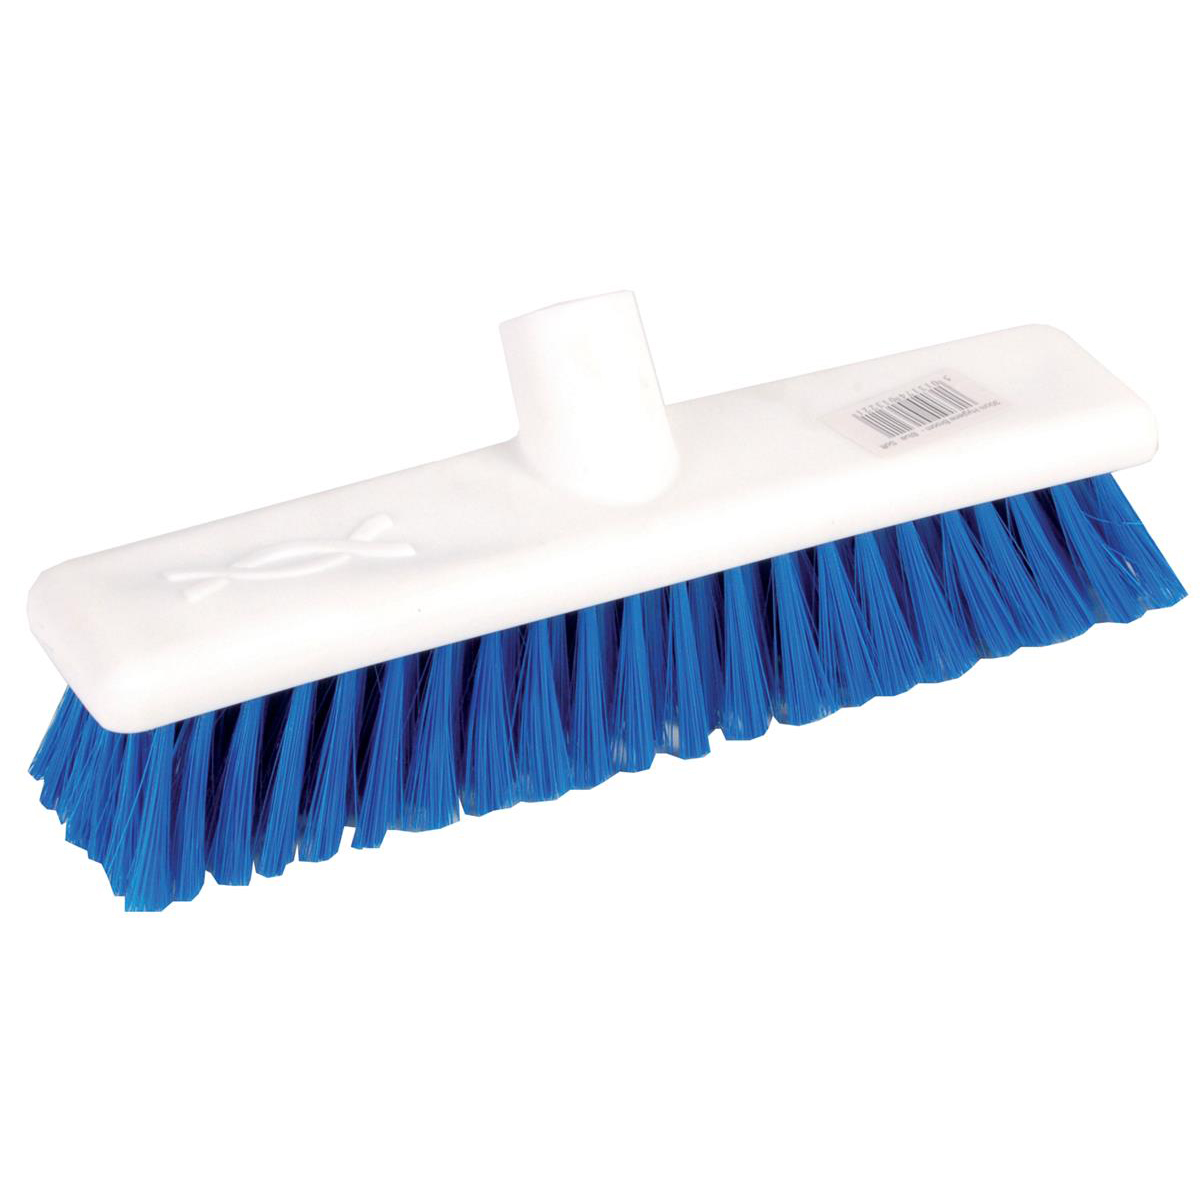 Brushes & Brooms Robert Scott & Sons Abbey Hygiene Broom 12inch Washable Soft Broom Head Blue Ref BHYRS12SBL